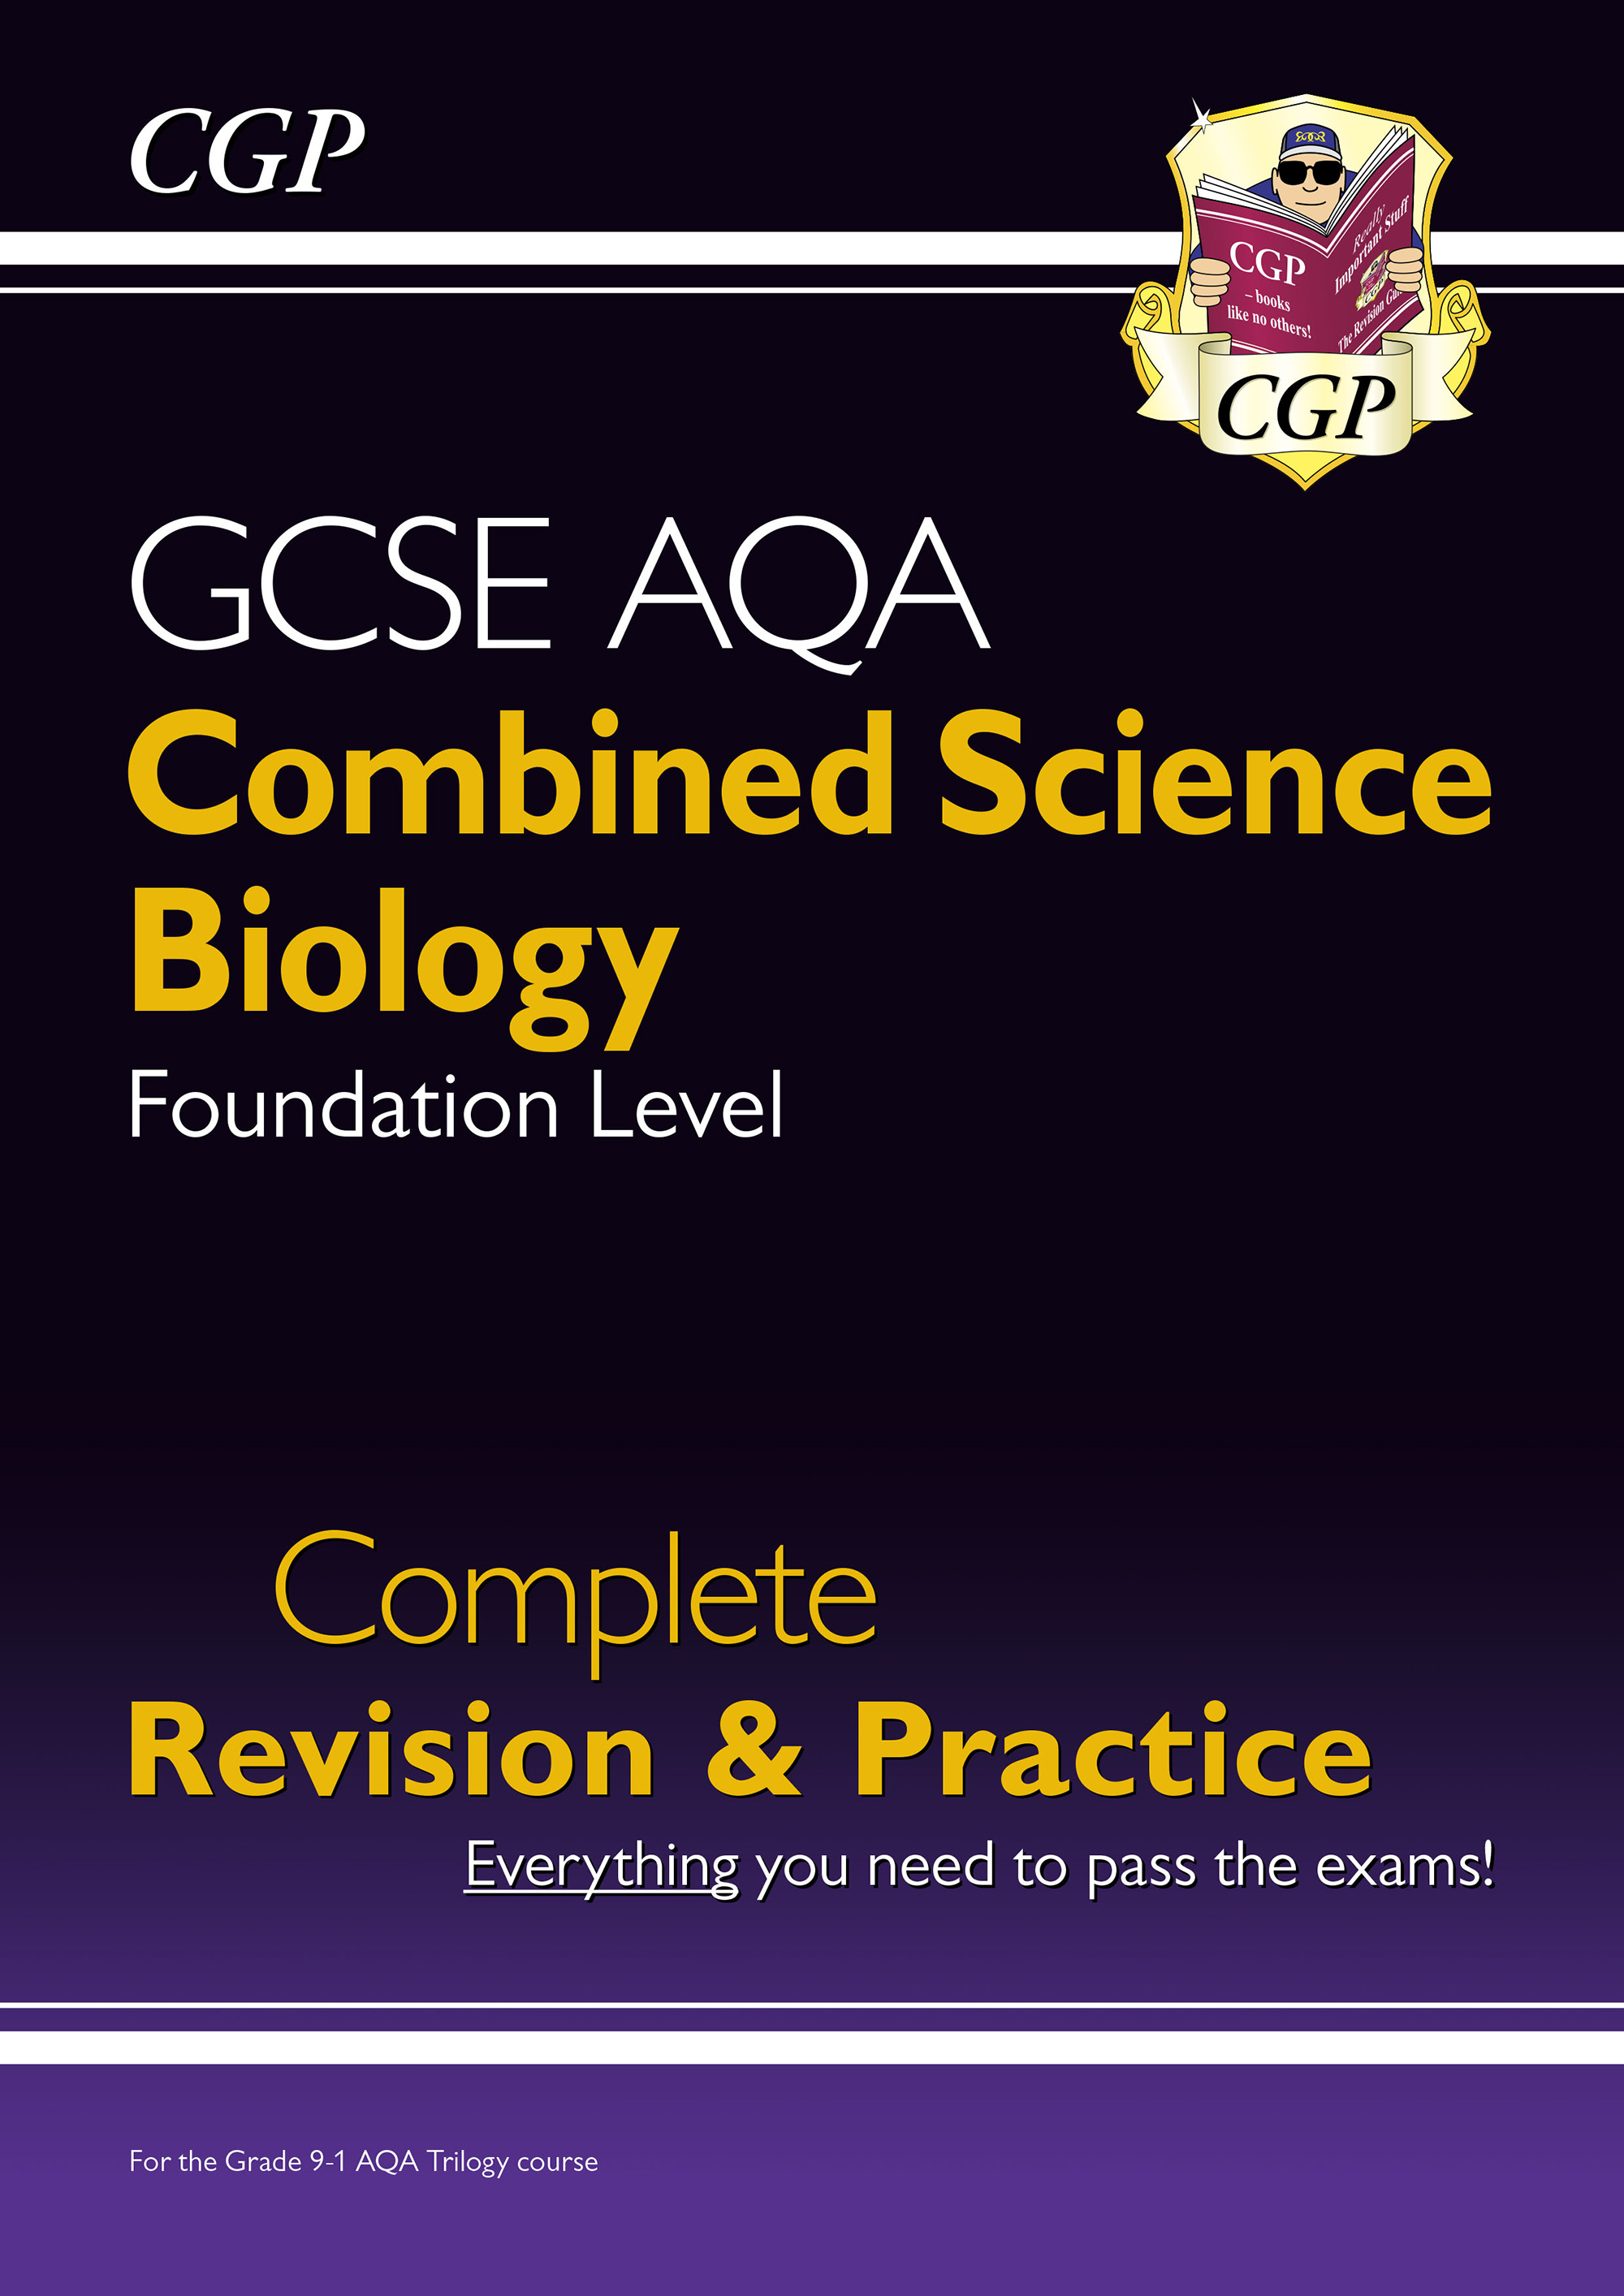 SCBAFS41DK - New 9-1 GCSE Combined Science: Biology AQA Foundation Complete Revision & Practice